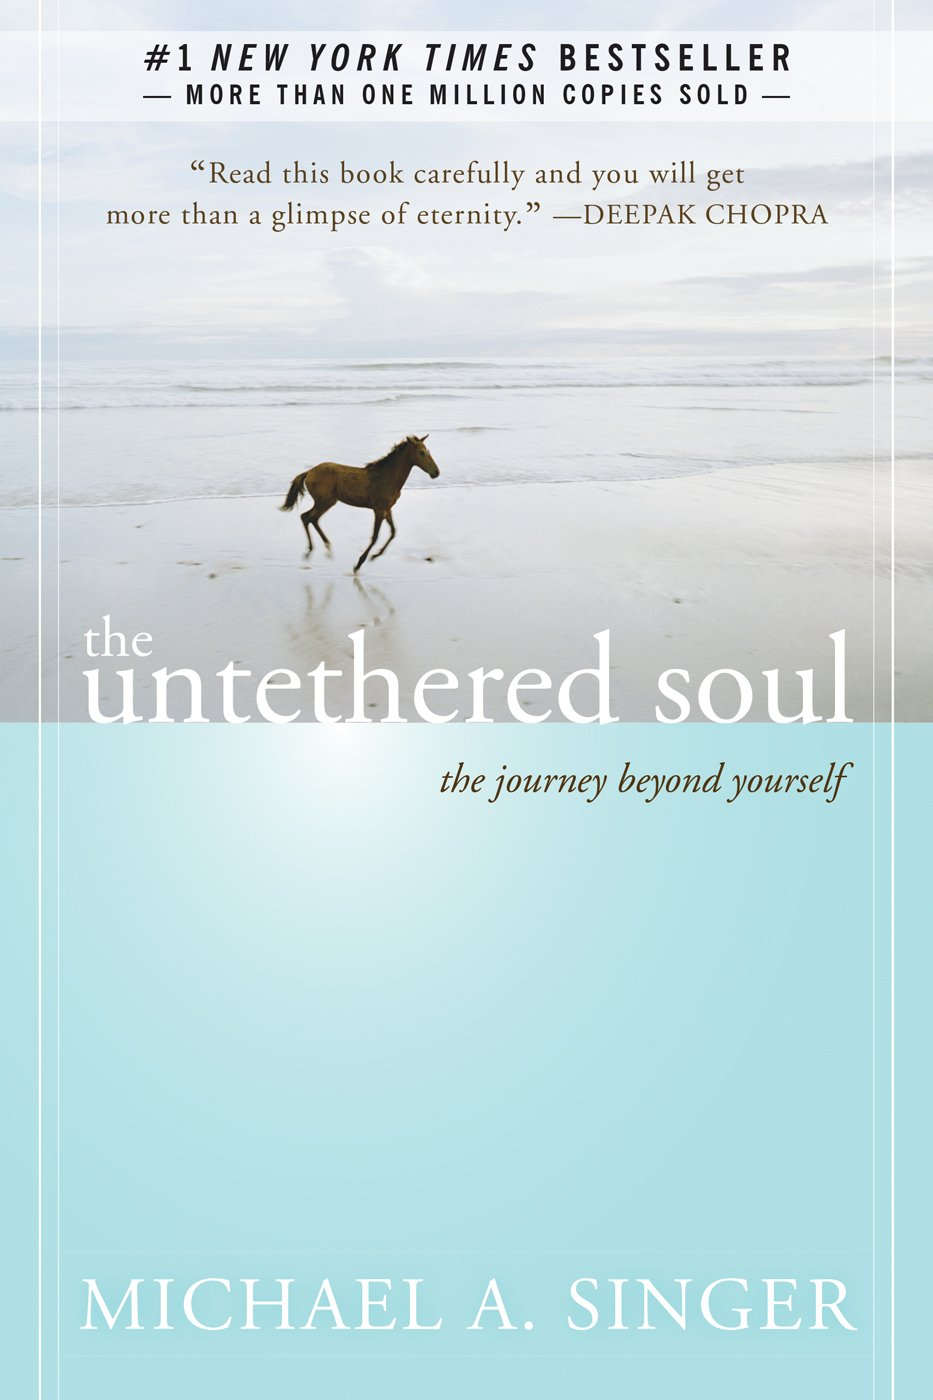 The Untethered Soul The Journey Beyond Yourself.jpg